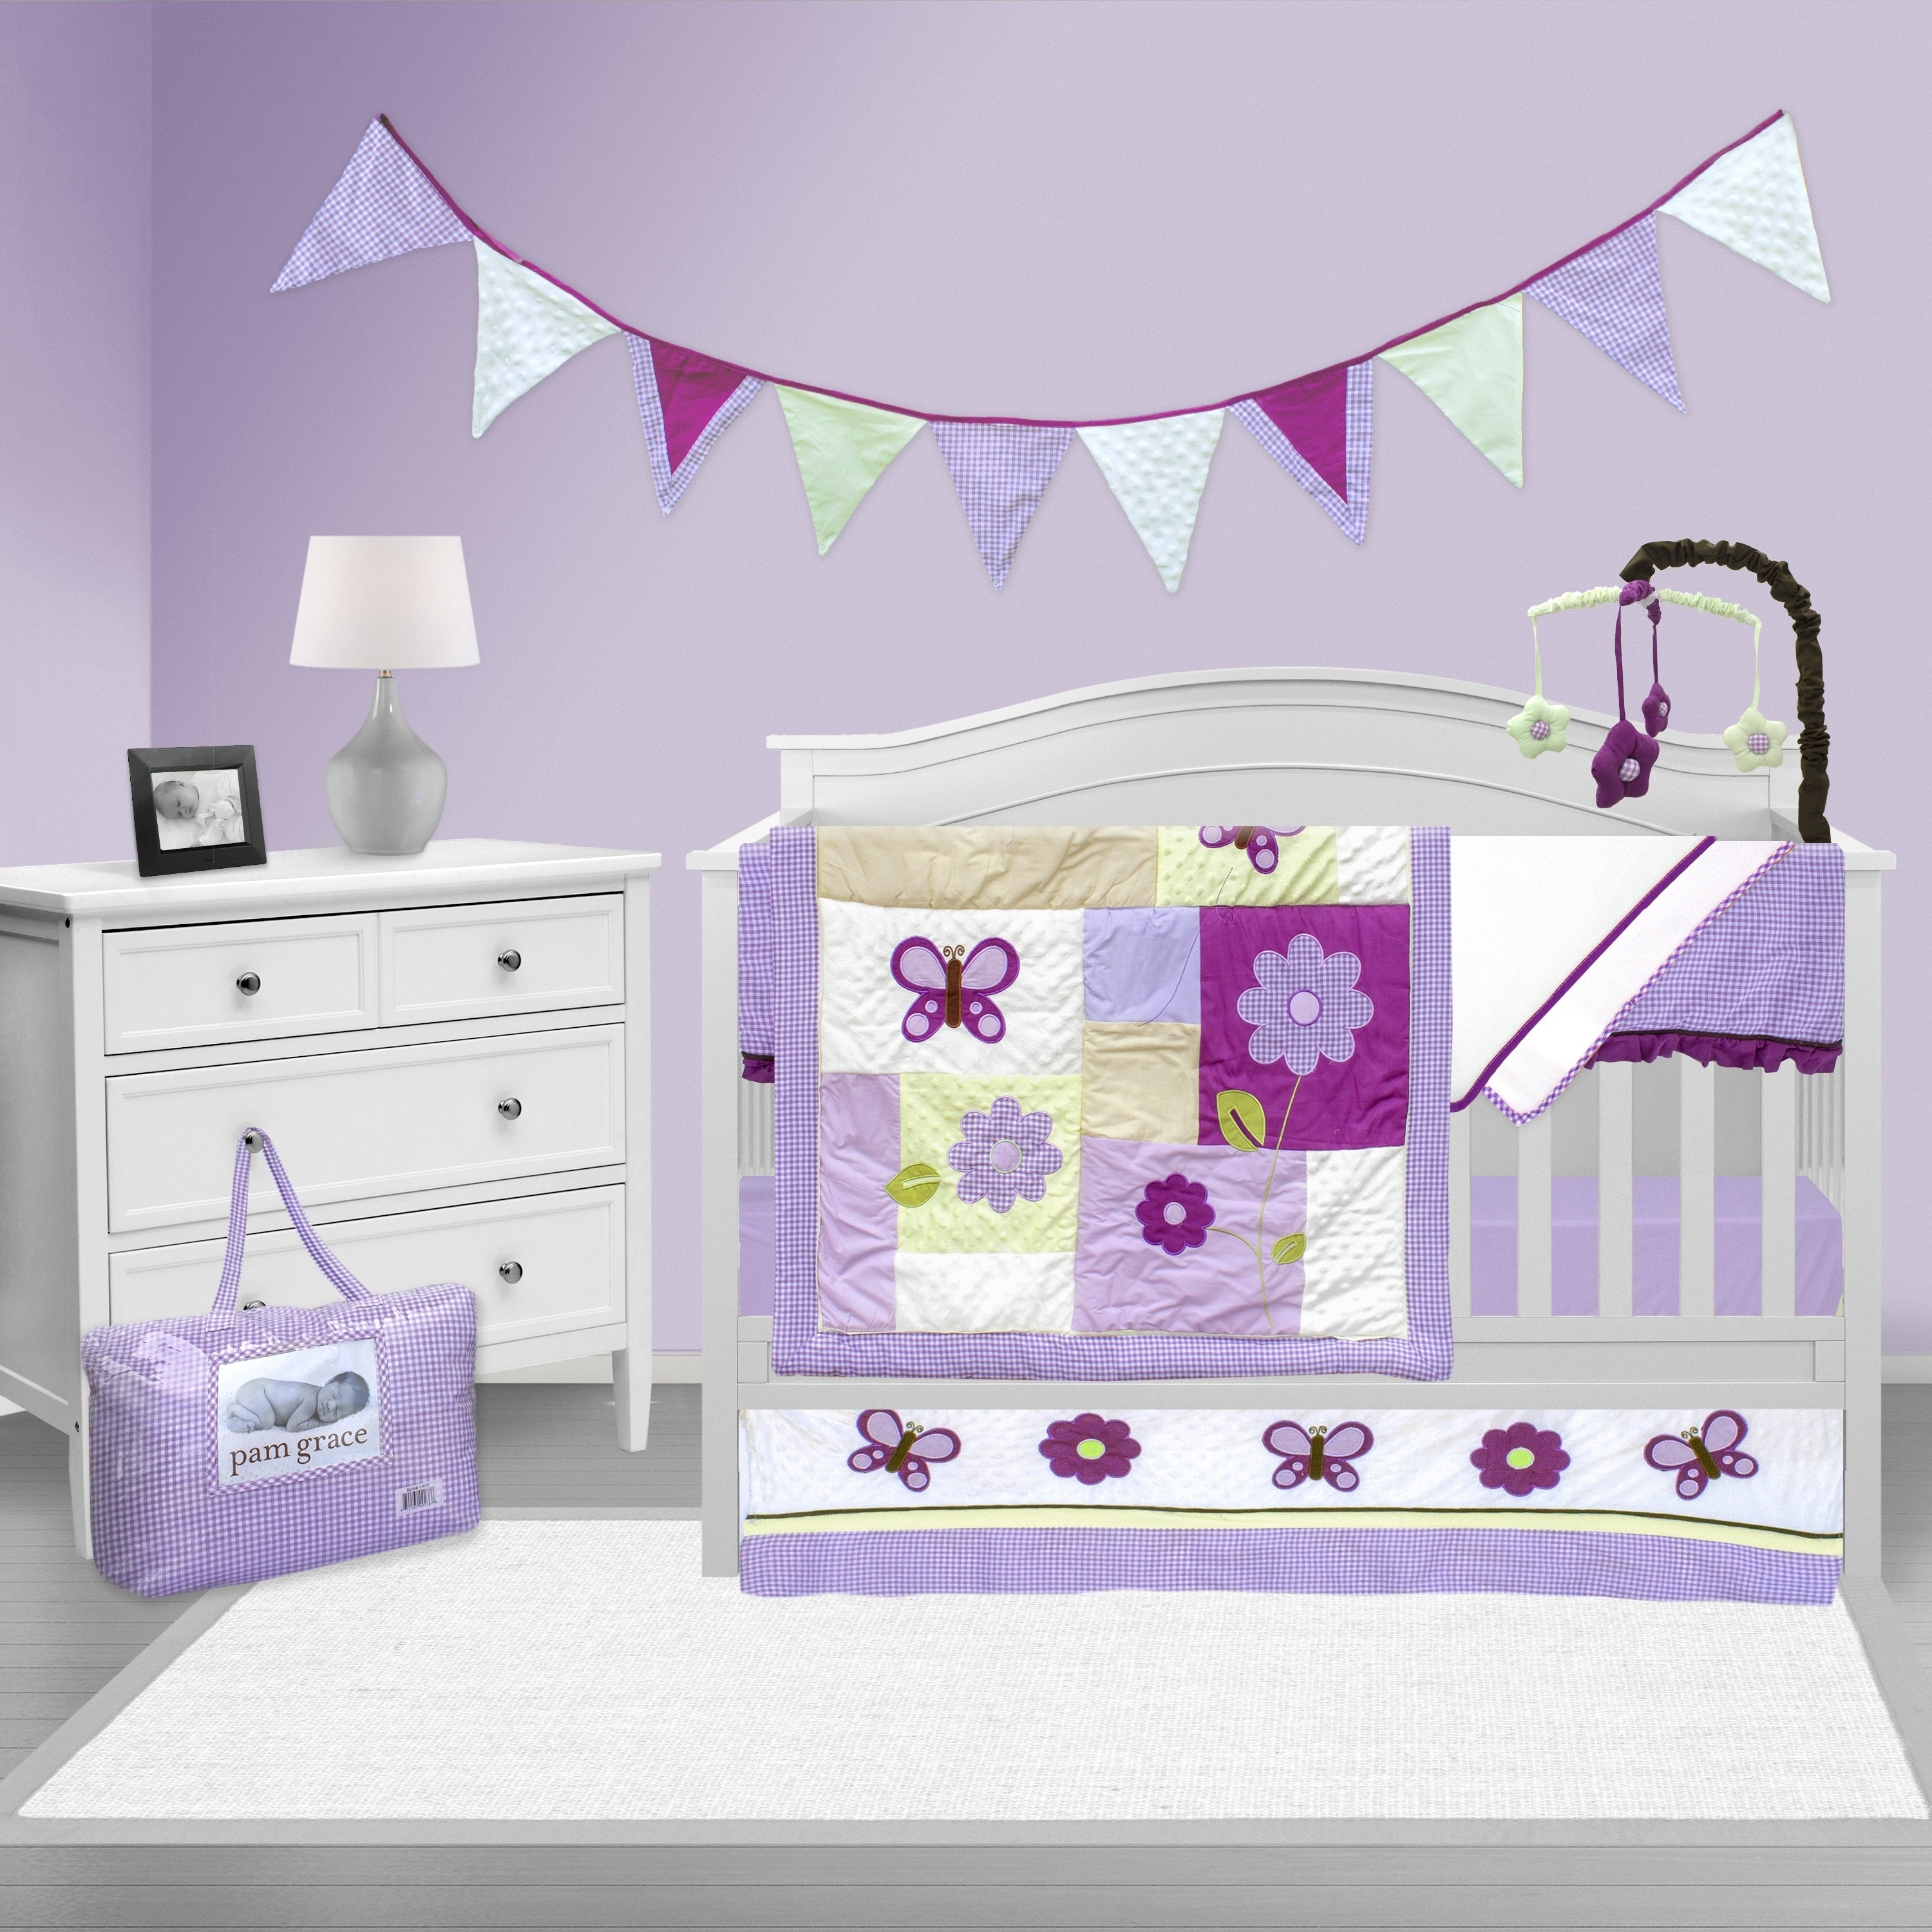 Shop Black Friday Deals On Pam Grace Creations Lavender Butterfly Crib Bedding Set Overstock 10517632